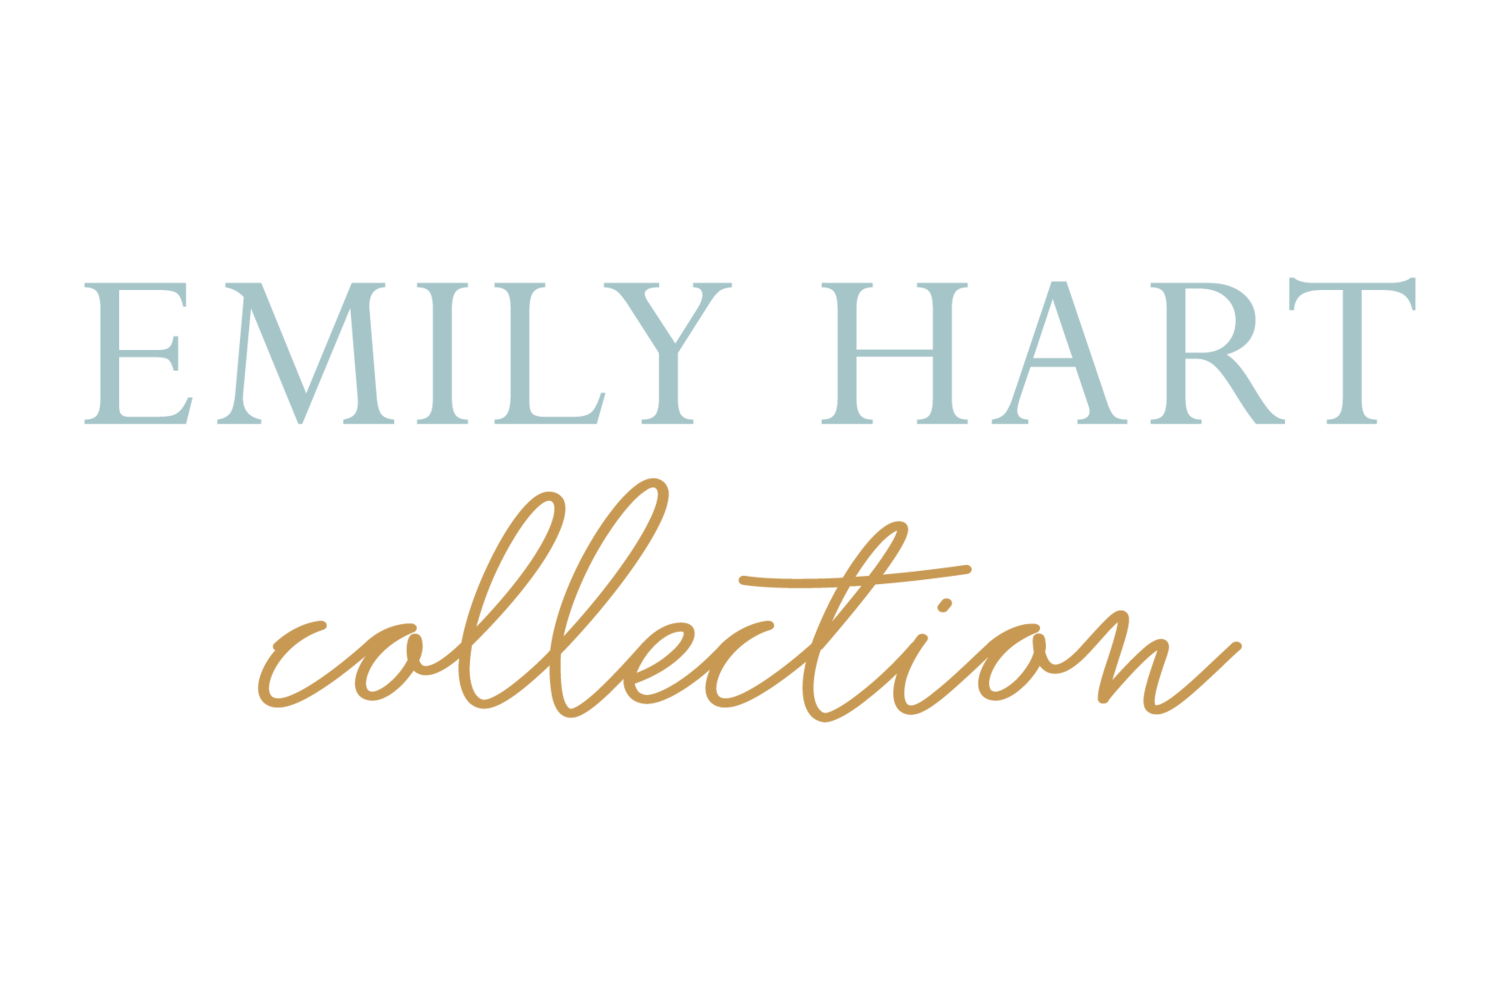 Emily Hart Collection